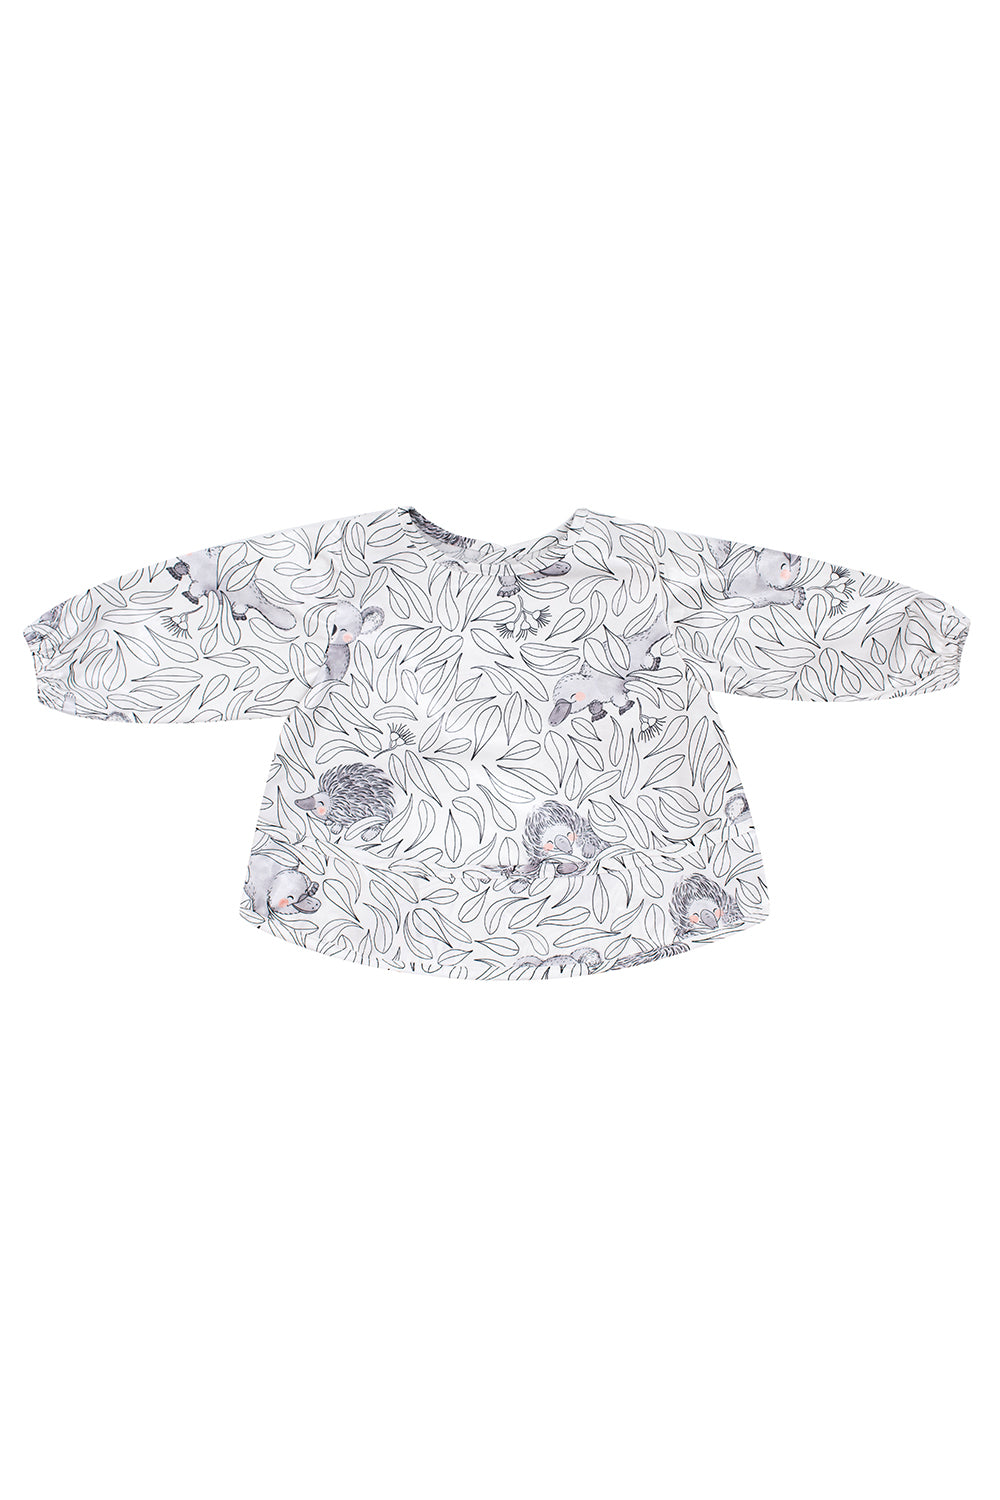 Cuddly Faces Long Sleeve Smock (Sold Out)